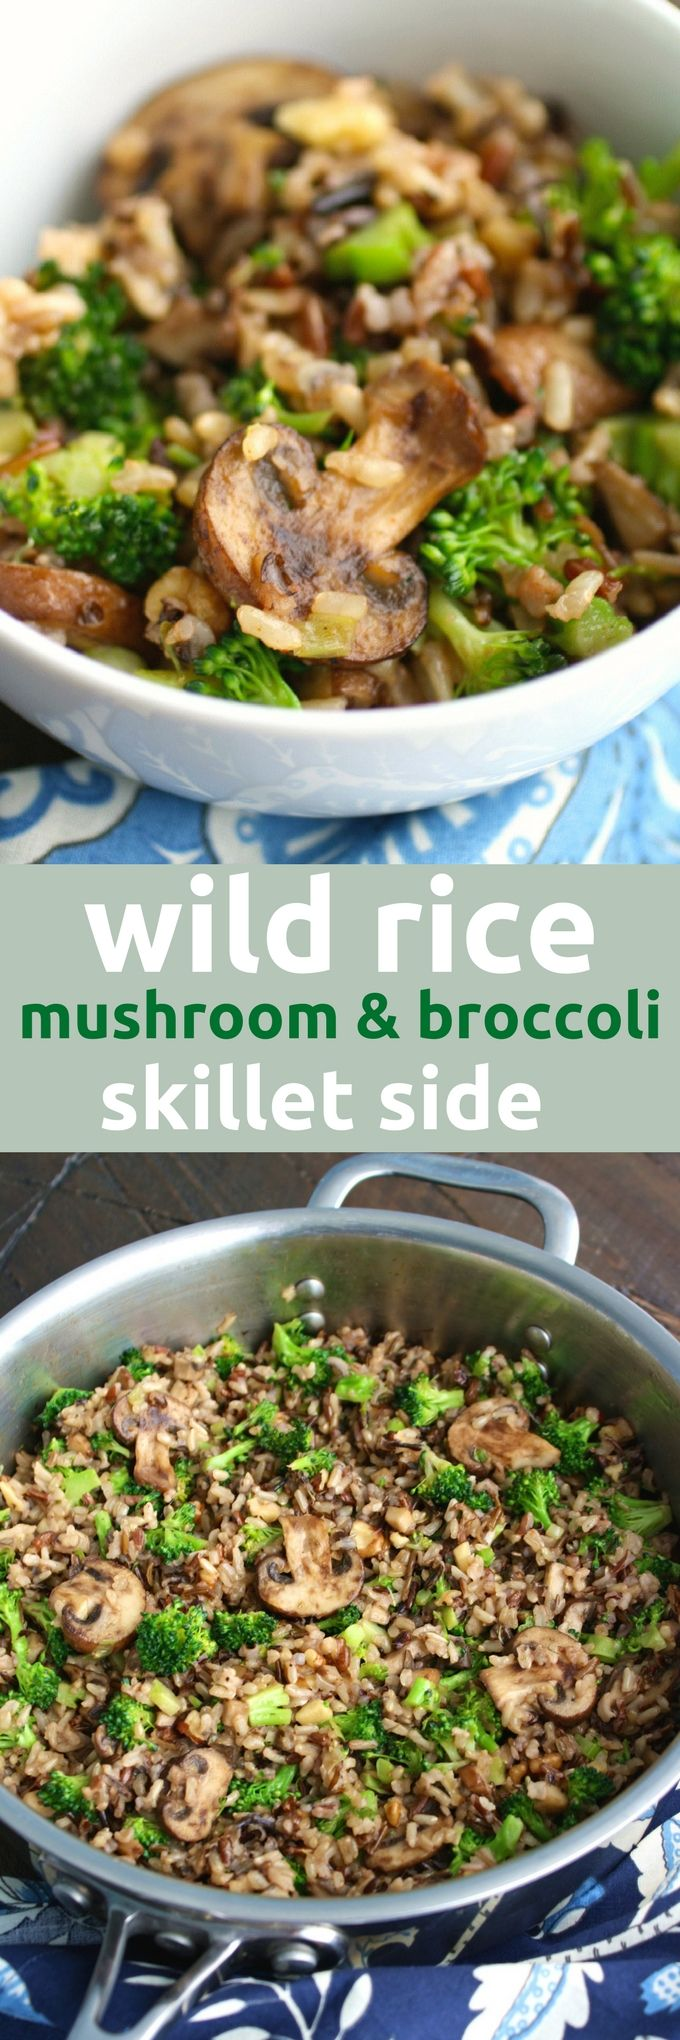 Wild Rice Mushroom and Broccoli Skillet Side is a great side dish for any meal, including the holidays! You'll love this side dish with wild rice as the star!